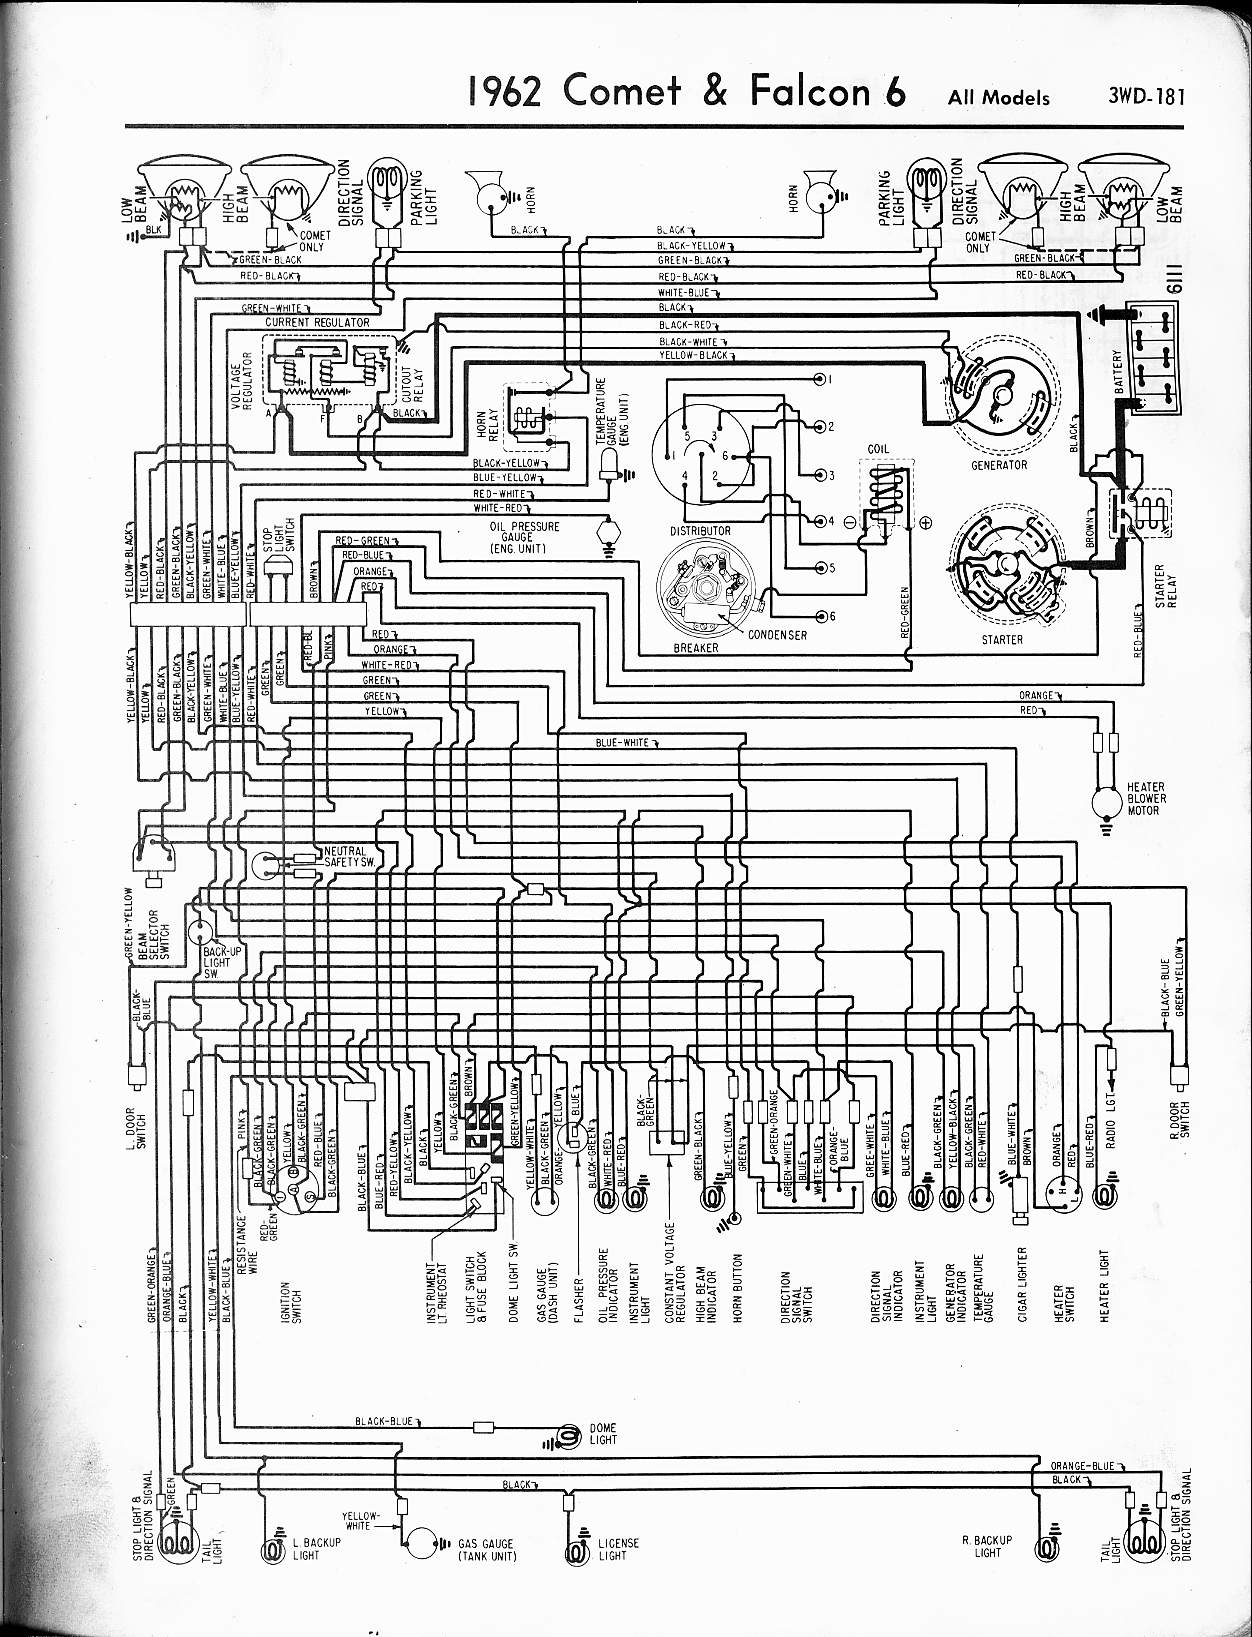 1979 Ford Factory Radio Wiring - Wiring Block Diagram  Ford Wiring Diagram Color Code on 1979 ford cab mount, 1979 ford tires, 1979 ford solenoid, 1979 ford brake system, 1979 ford accessories, 1958 thunderbird wiring diagram, ignition control module wiring diagram, 1967 ford wiring diagram, 77 ford truck wiring diagram, 1976 ford alternator wiring diagram, 1979 ford headlight, 1979 ford starter, 1961 thunderbird wiring diagram, ford tractor alternator wiring diagram, 1979 ford frame, 1965 lincoln wiring diagram, 1979 ford engine, 1979 ford ignition coil, 1979 ford truck turn signals, 1979 ford water pump,